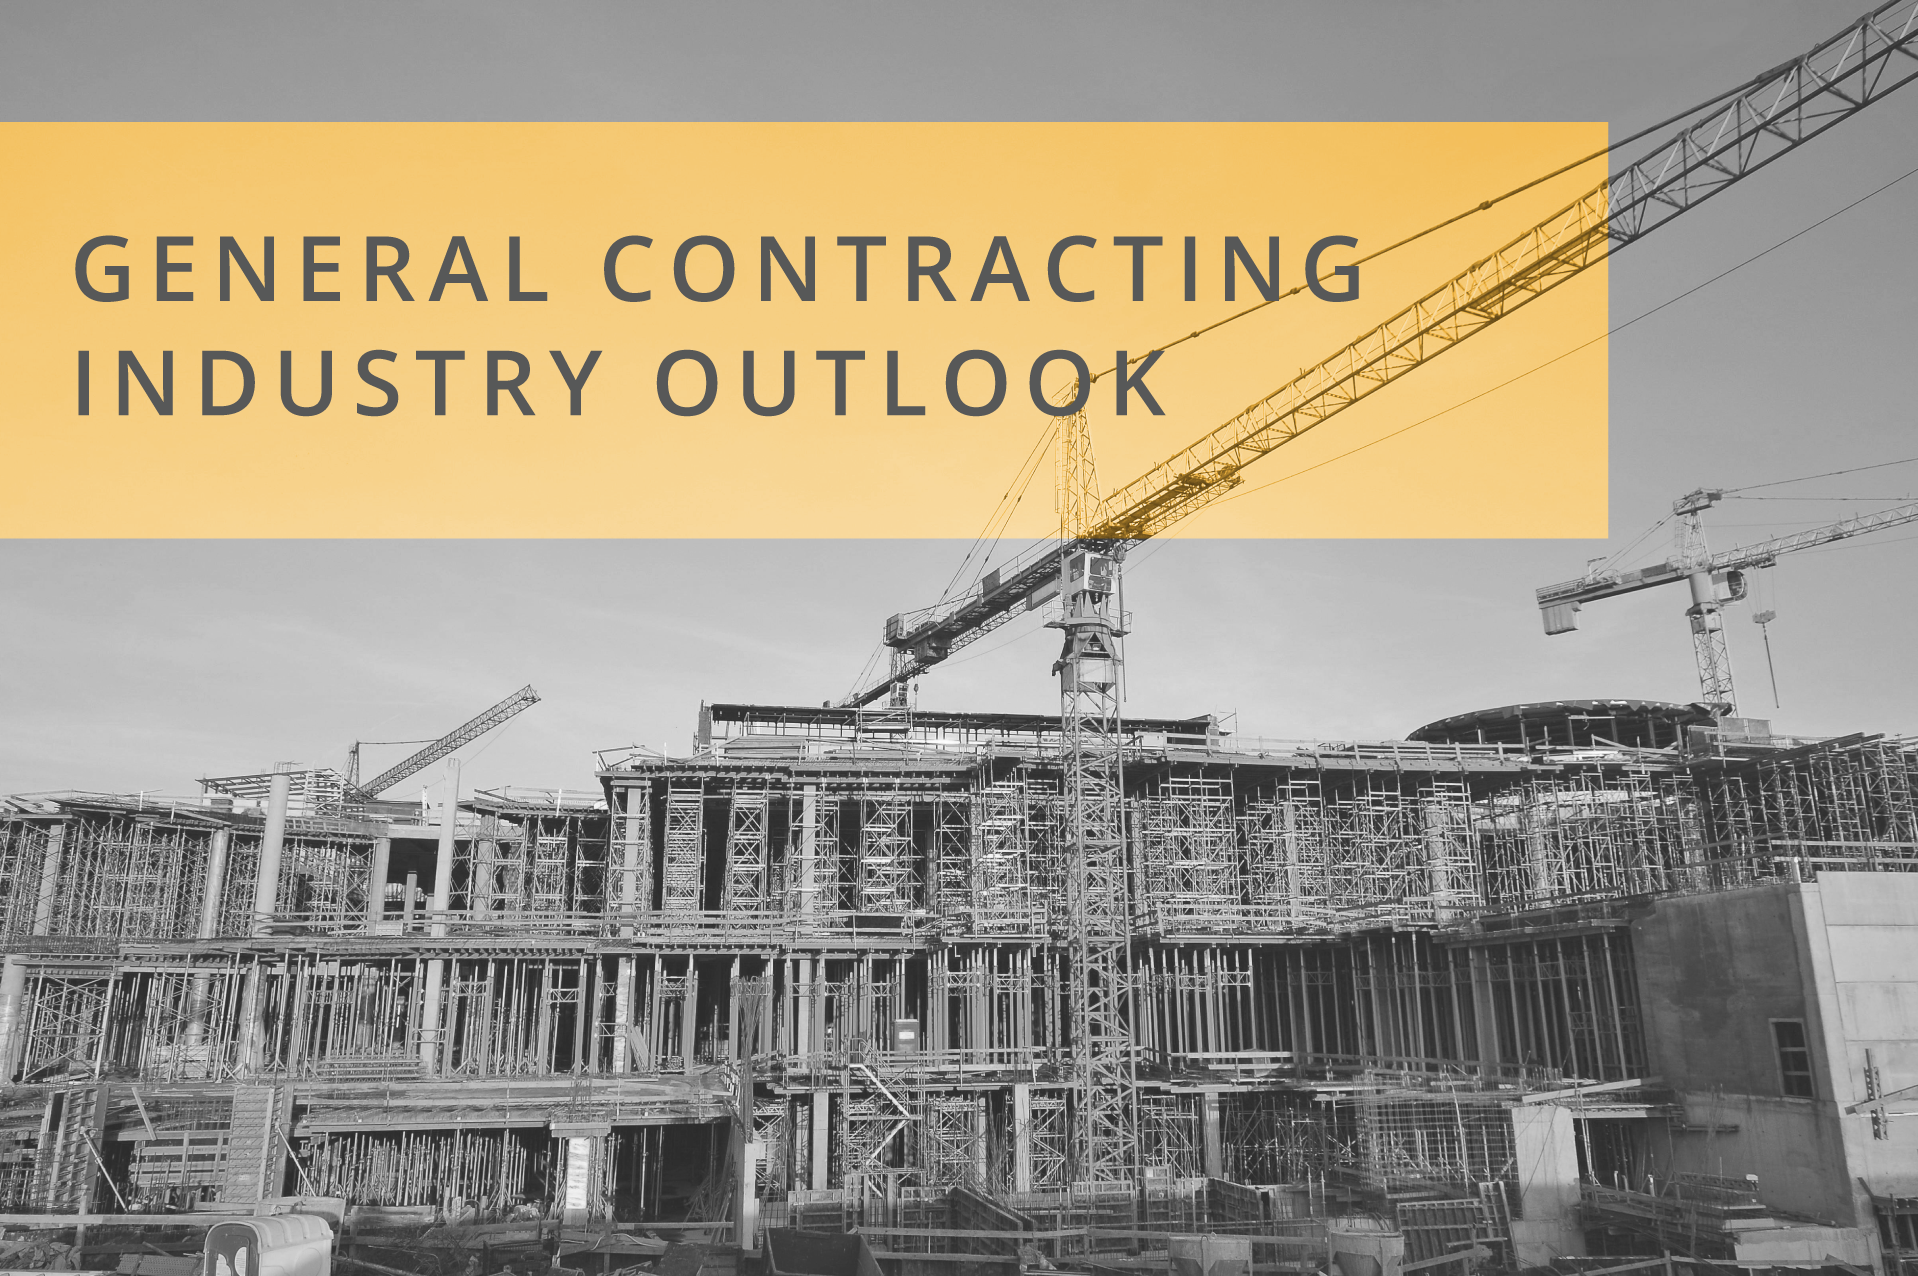 General Contracting Industry Outlook 2018 - Construction World